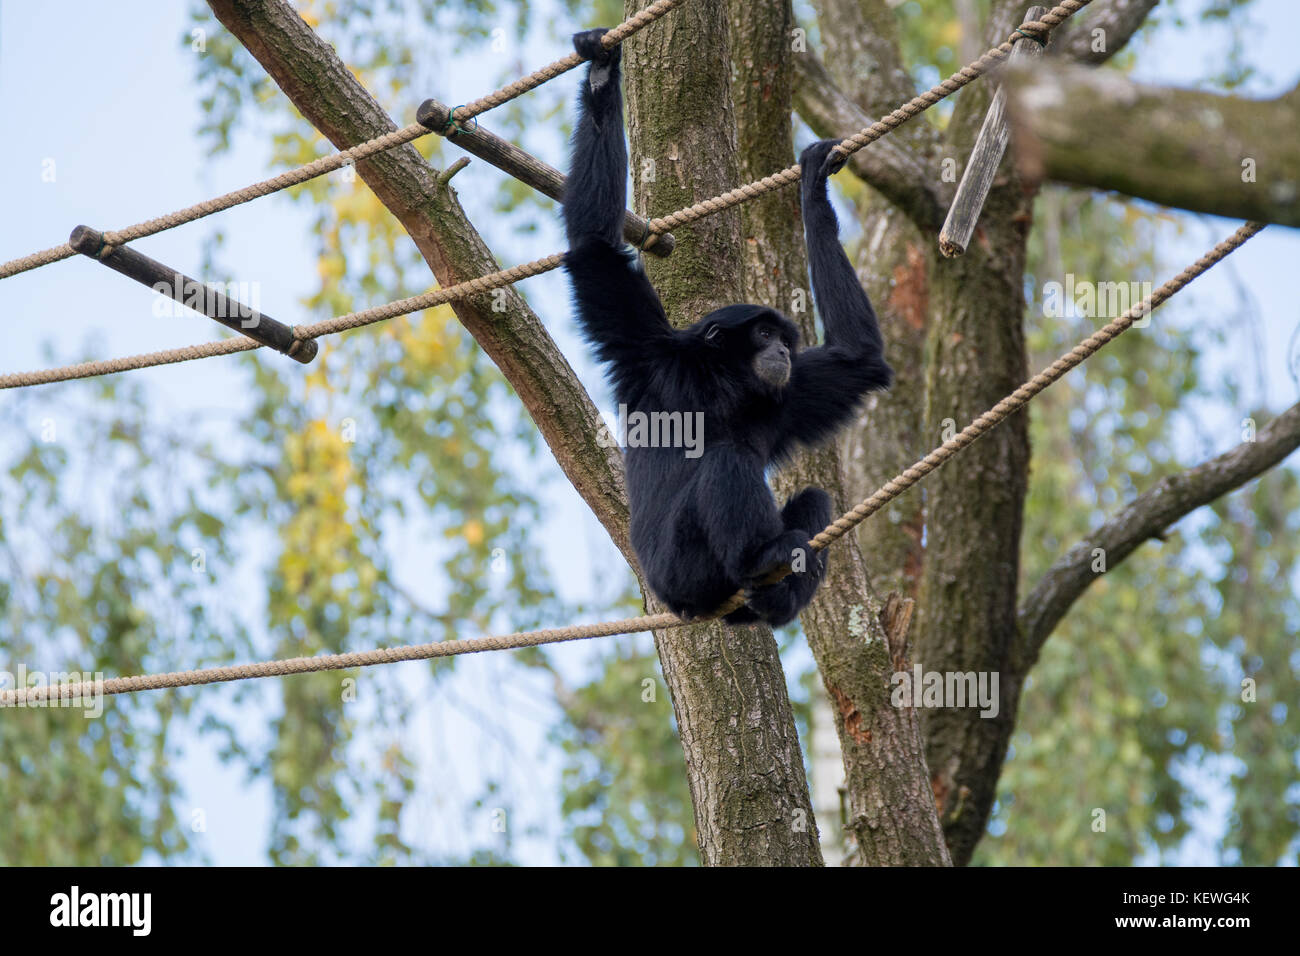 monkey swinging gibbon stockfotos monkey swinging gibbon bilder alamy. Black Bedroom Furniture Sets. Home Design Ideas